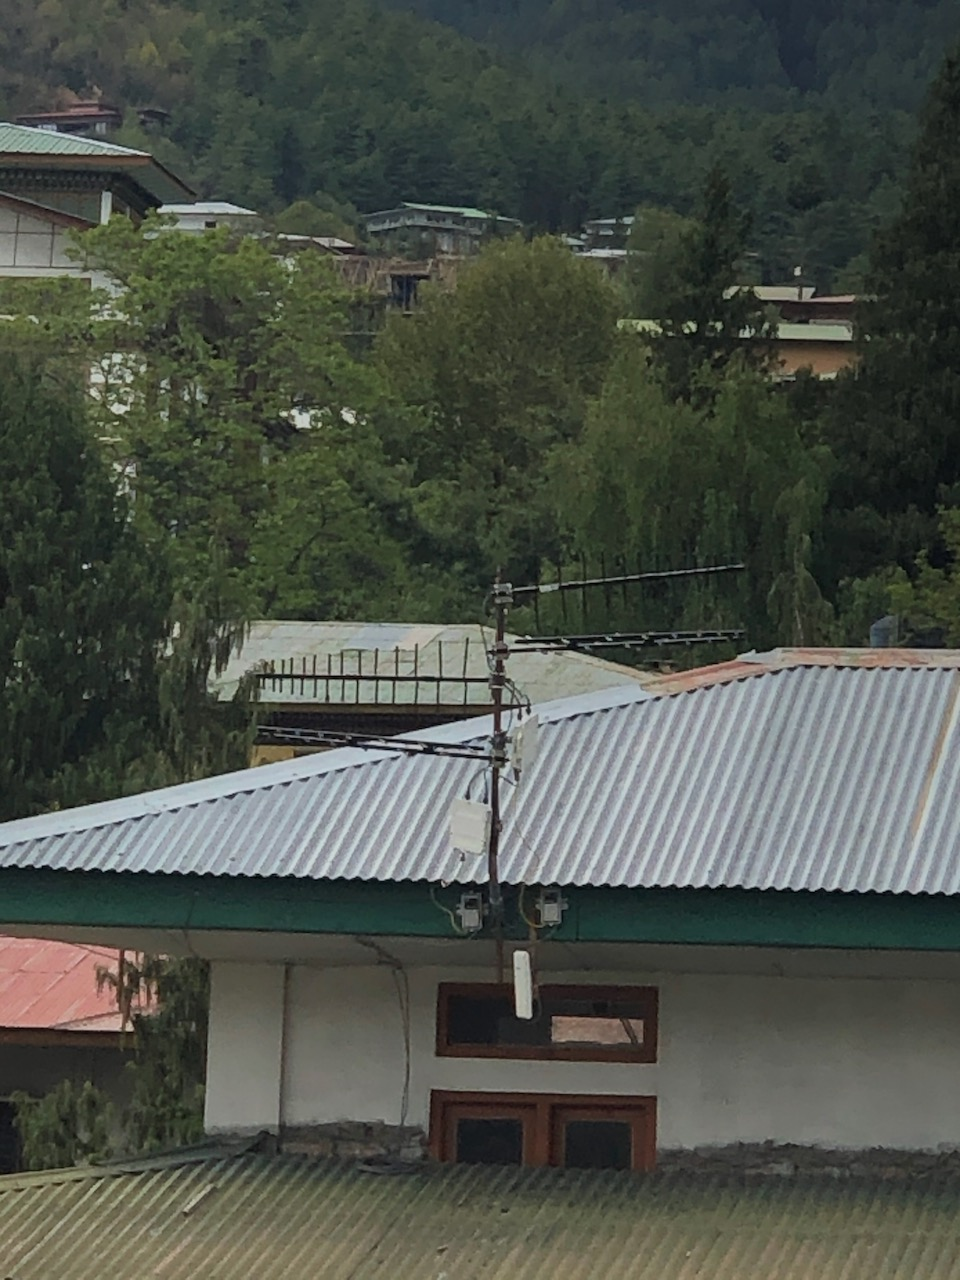 One of the Base Stations built on Rooftop